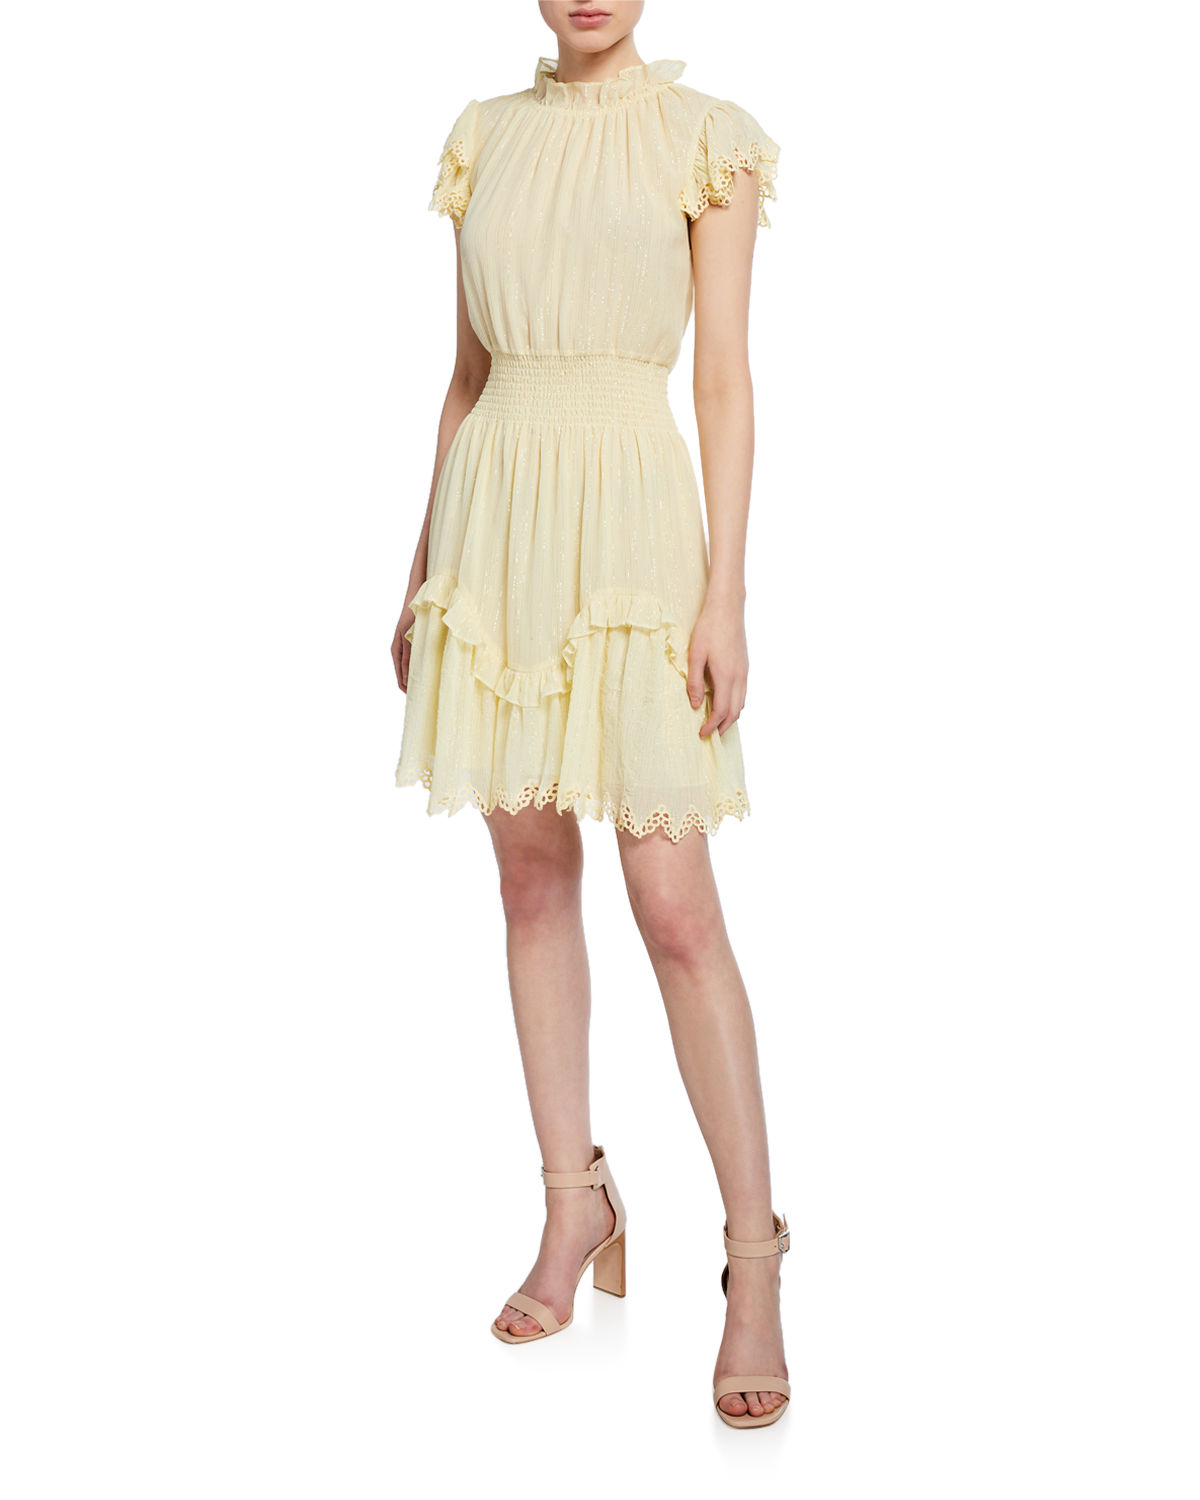 Rebecca Taylor Dresses HIGH-NECK METALLIC SHORT DRESS WITH LACE